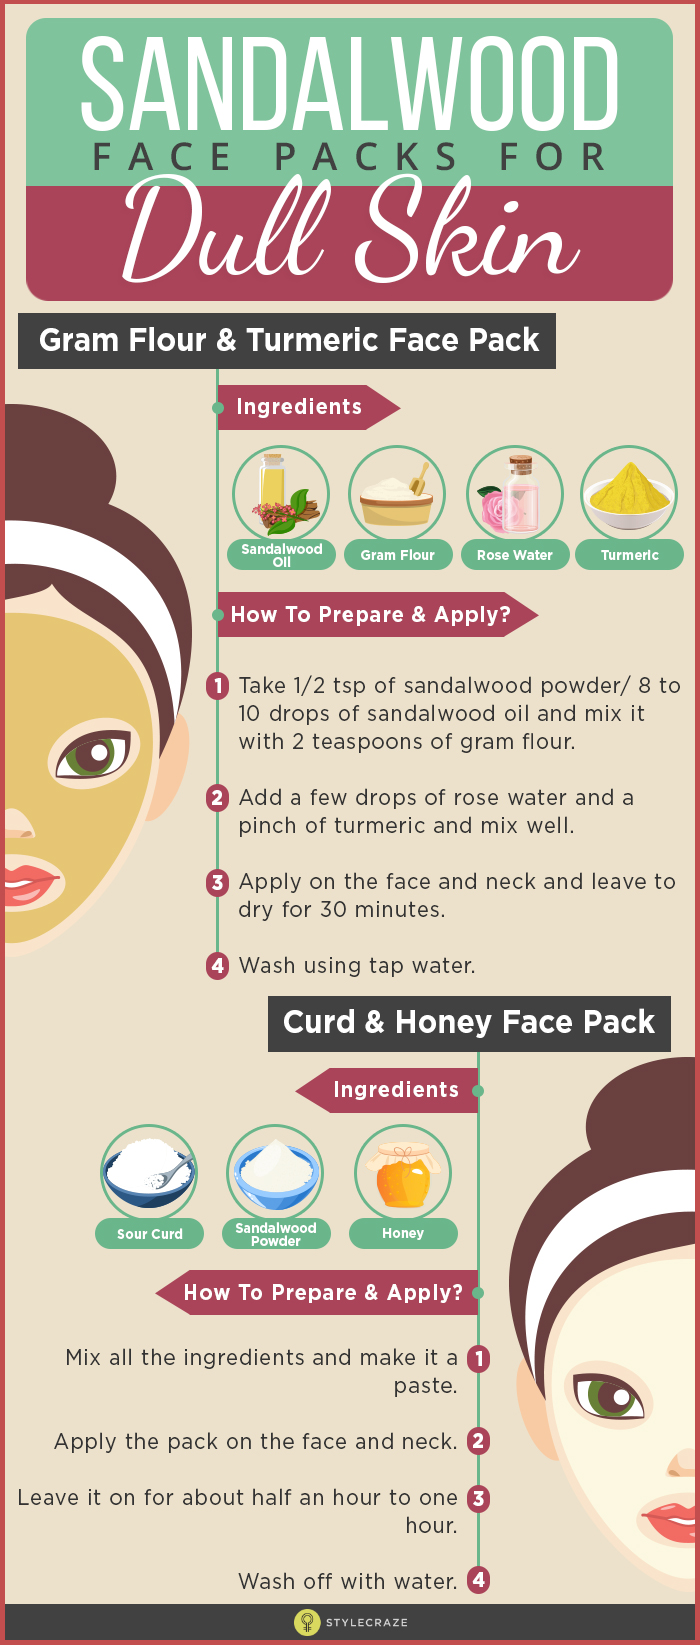 How To Prepare And Apply Chandan Face Packs For Dull Skin?